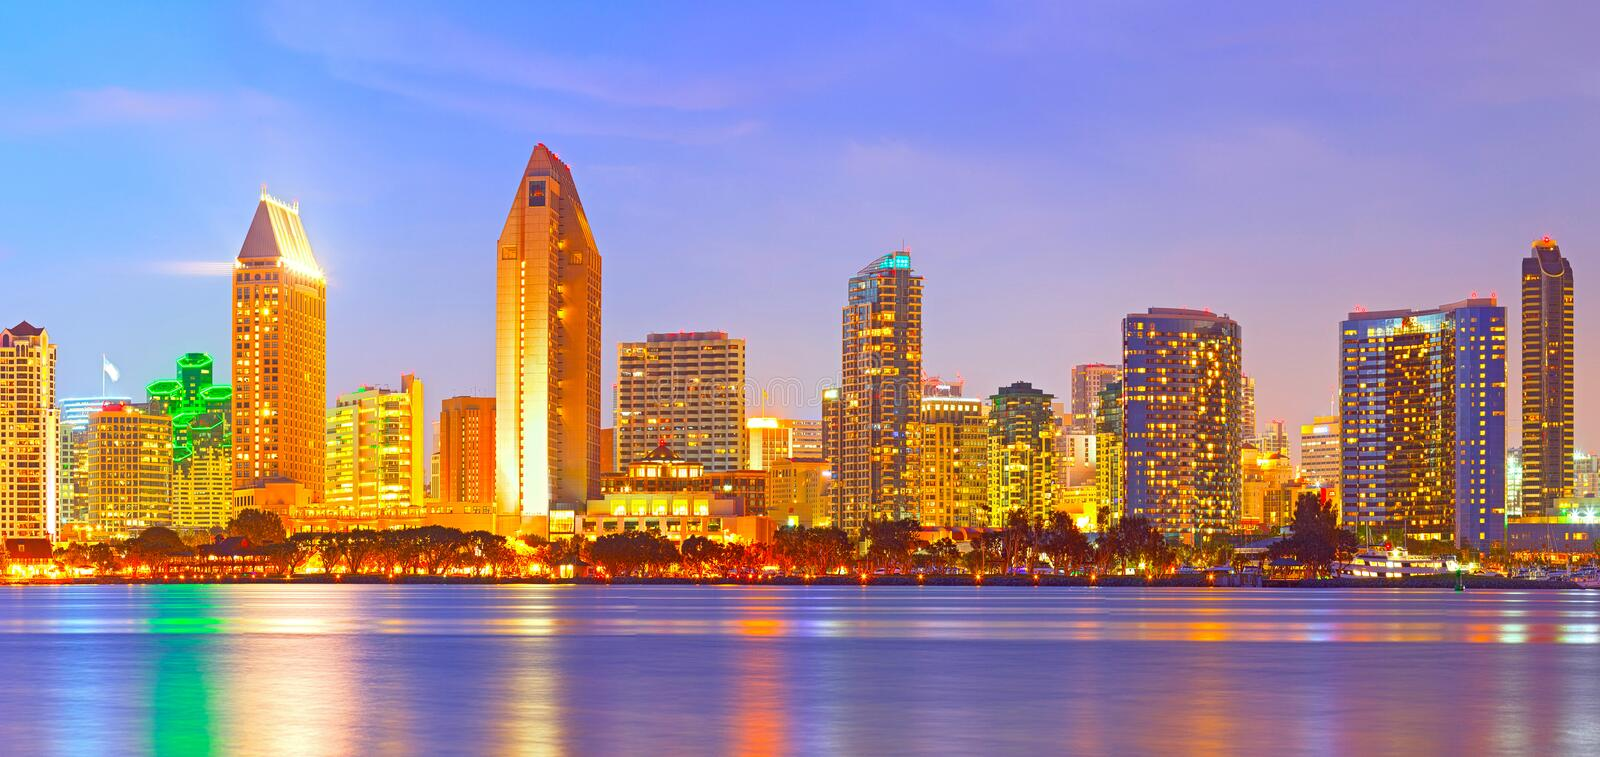 San Diego California. City skyline at sunset on a beautiful summer night with lighted skyscrapers and downtown buildings royalty free stock images